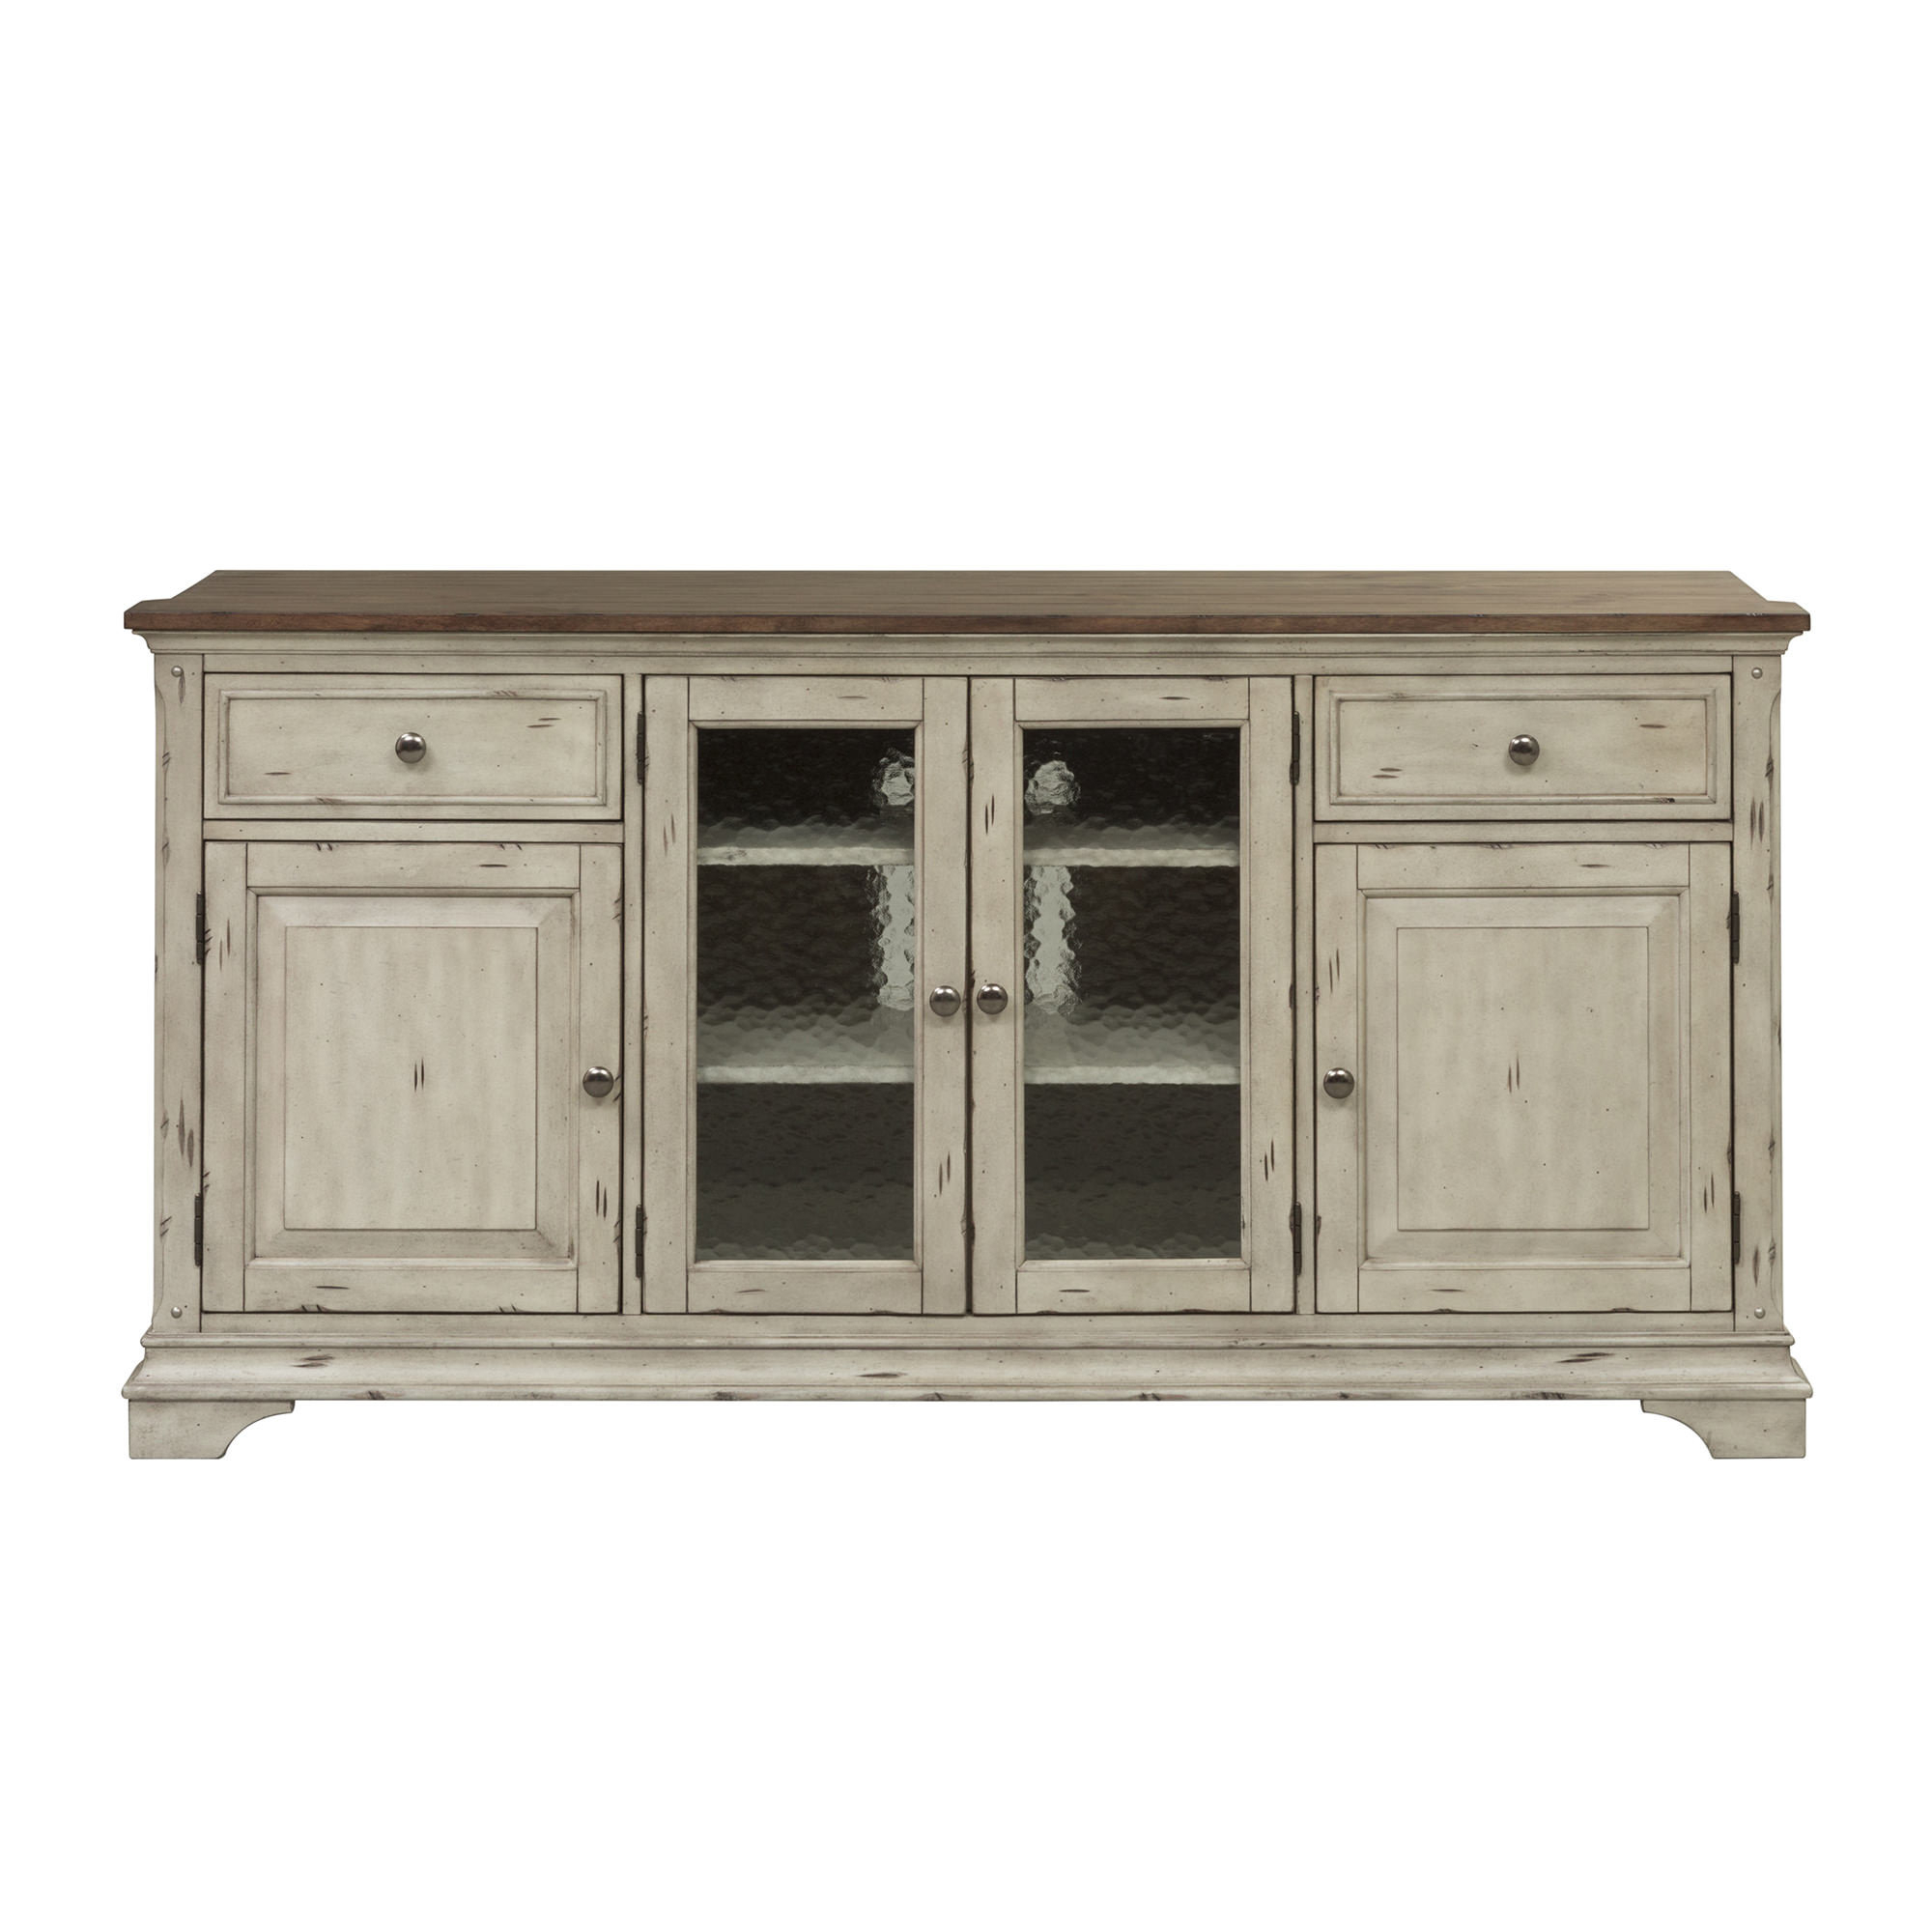 70 Inch Tv Stands | Joss & Main In Bale Rustic Grey 82 Inch Tv Stands (View 1 of 20)